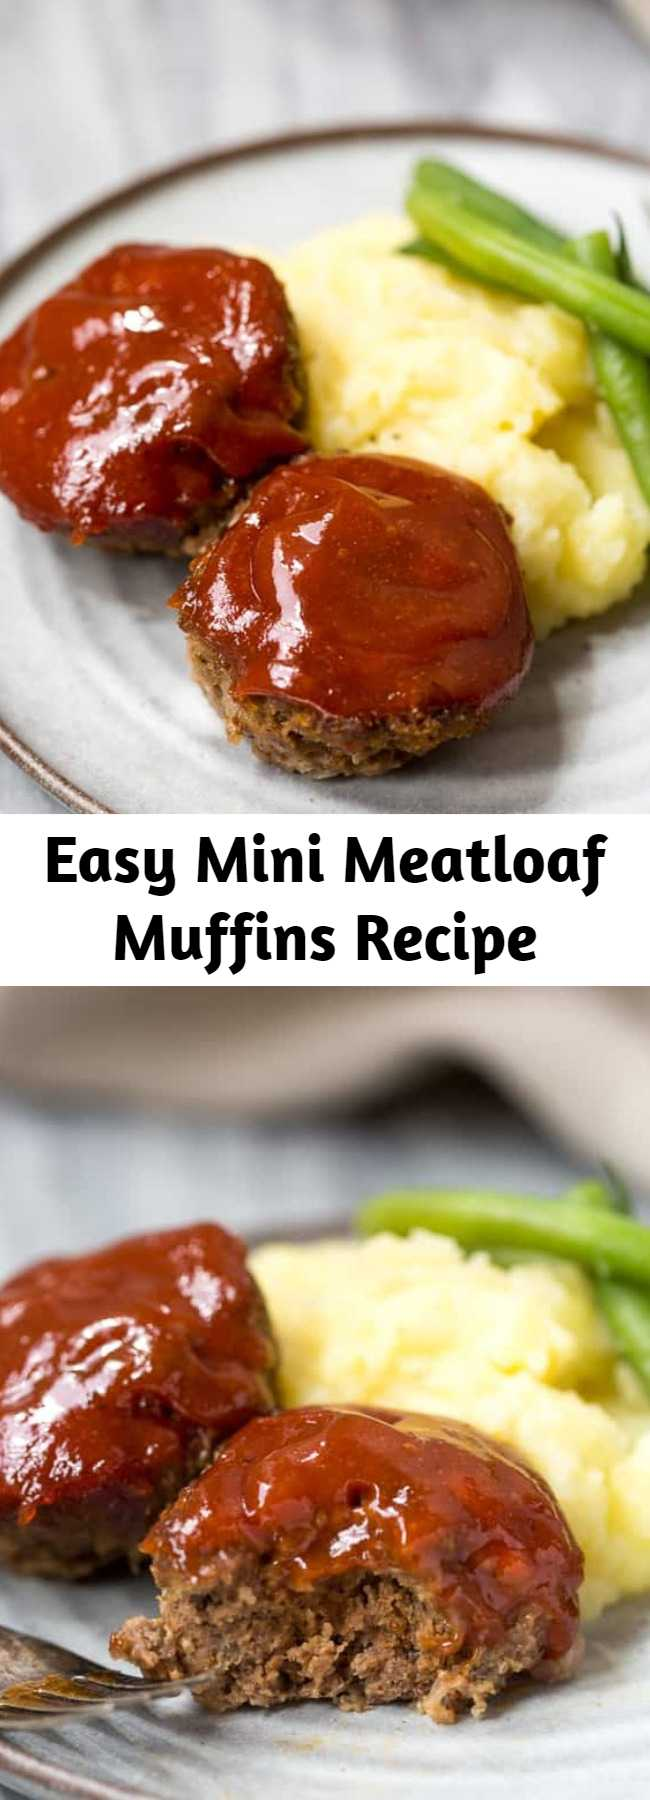 Easy Mini Meatloaf Muffins Recipe - Easy Mini Meatloaf muffins are made with ground beef or ground turkey and topped with a delicious meatloaf sauce.  They are easier and healthier than traditional meatloaf.